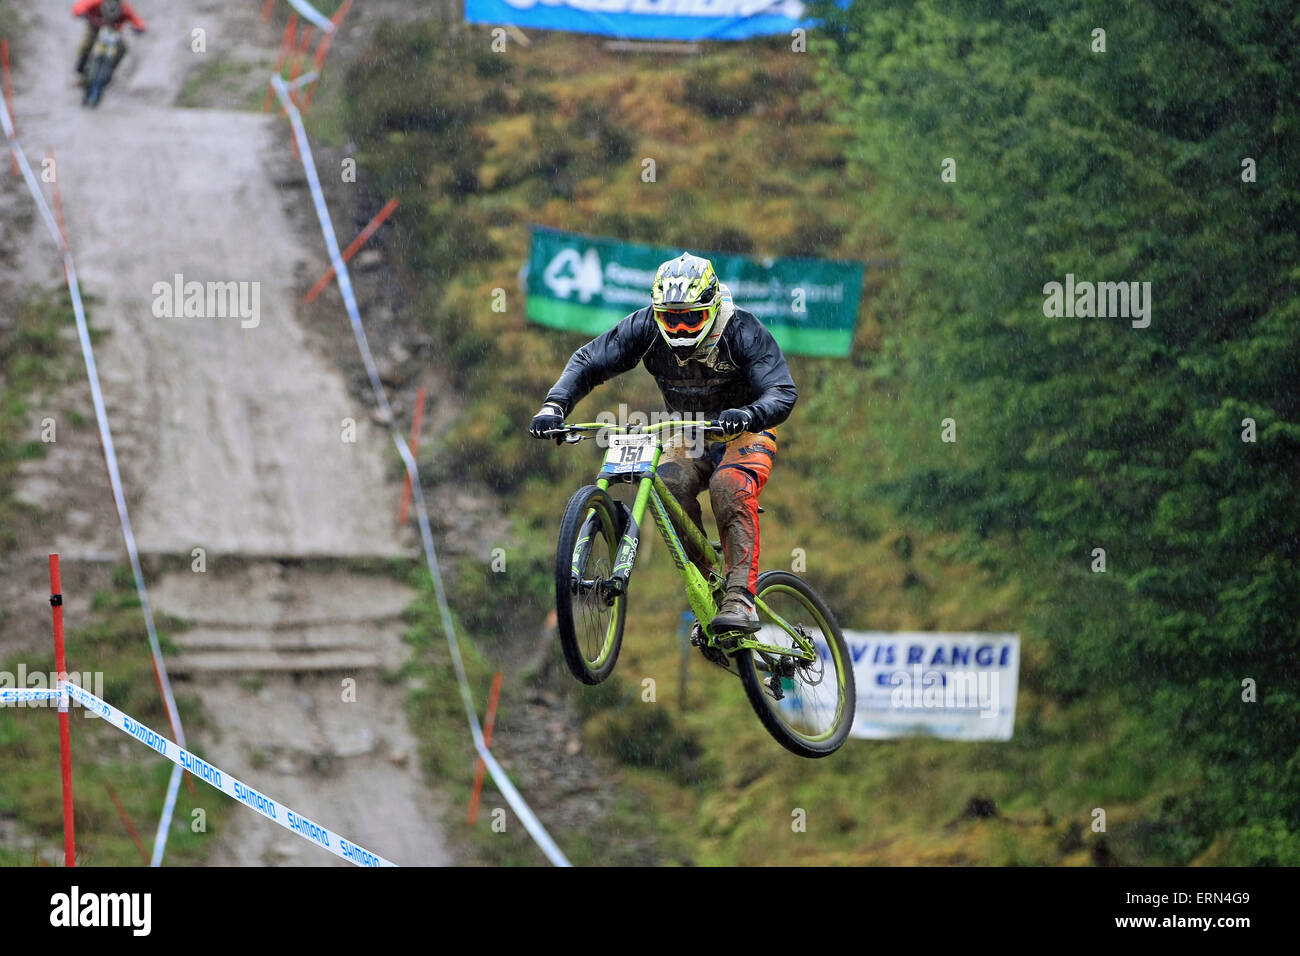 Fort William, Scotland, UK. 5th June, 2015.The heavy rain didn't stop riders practicing on the course for round - Stock Image